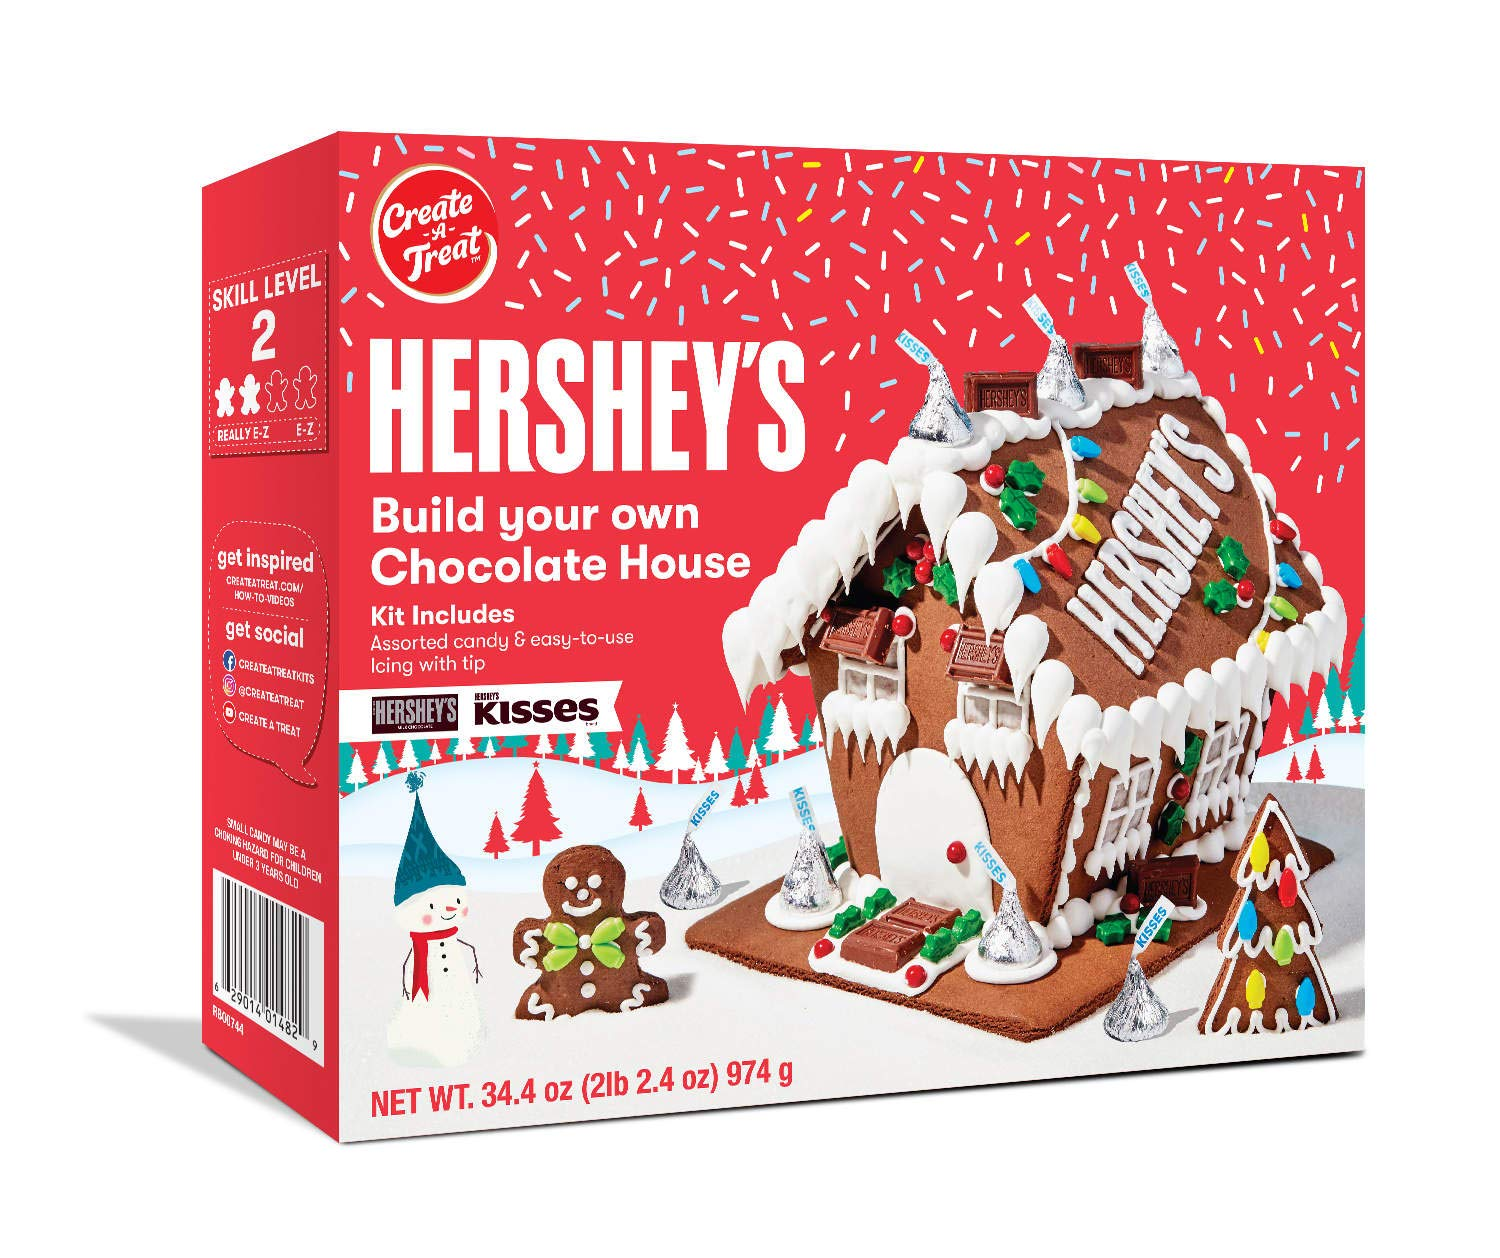 Hershey's Build Your Own Chocolate Holiday Gingerbread House Kit - 34.4 oz